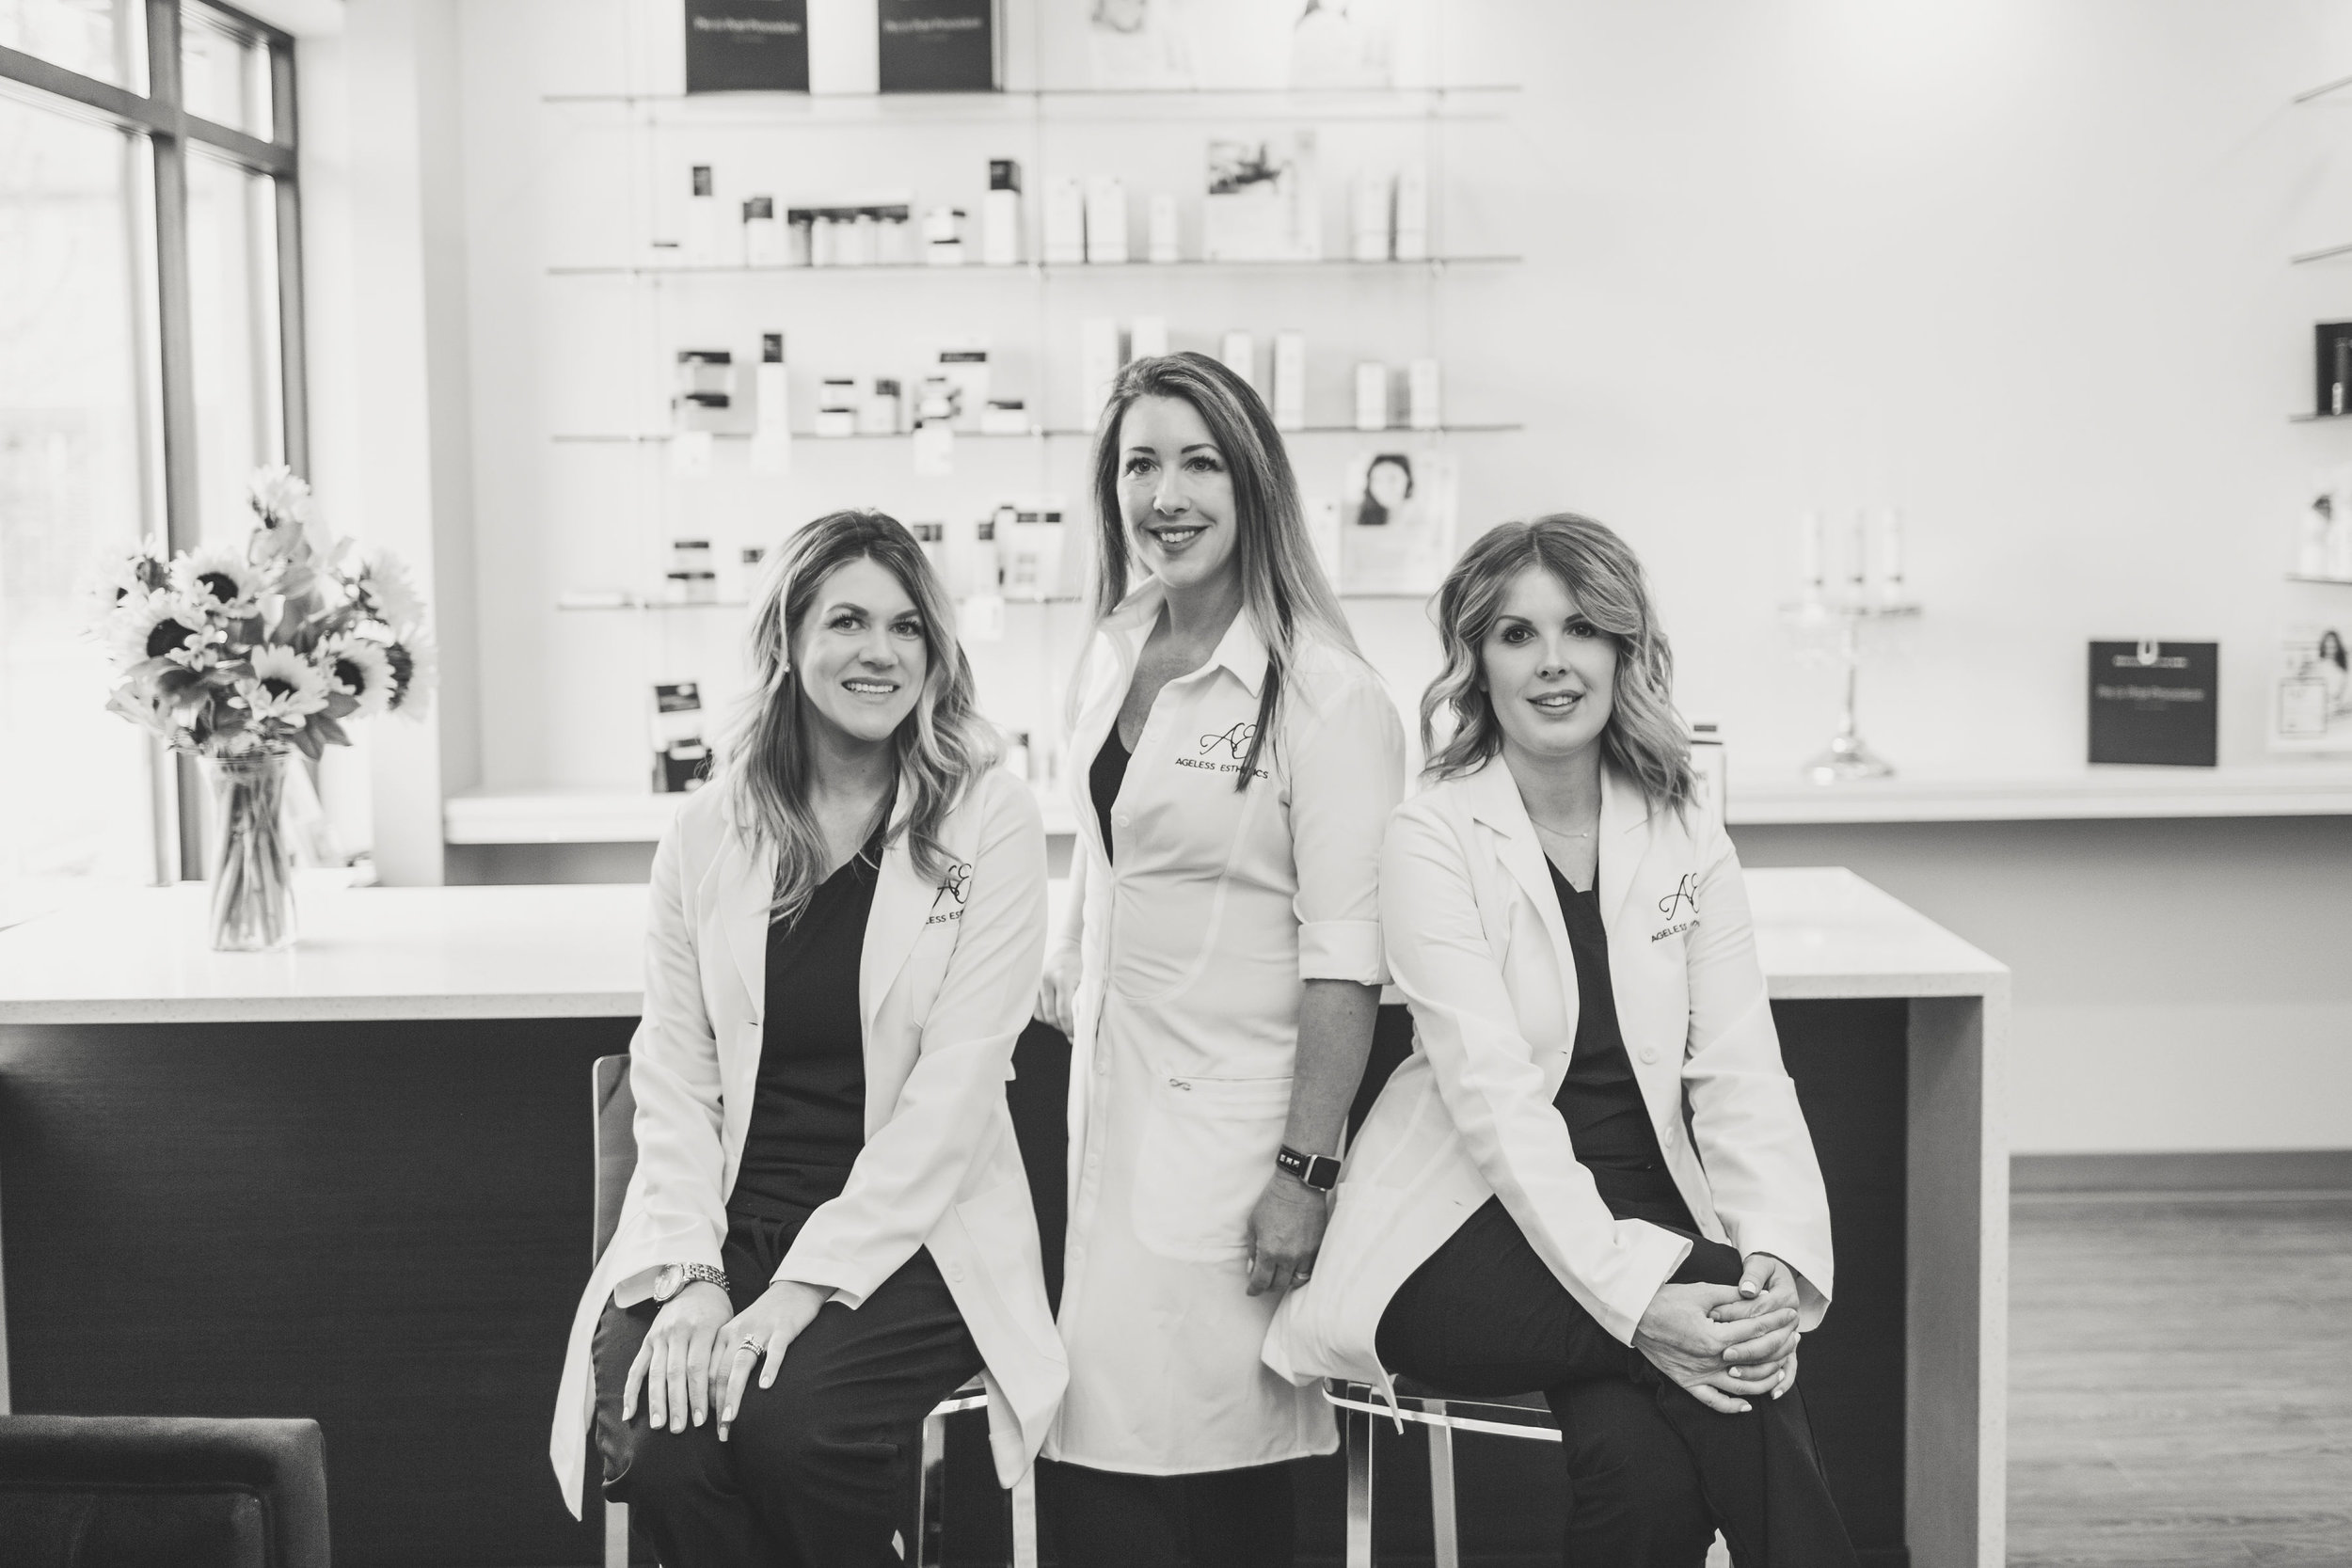 We have your best interest at heart! - Sincerely Nichole, Danielle and Marti